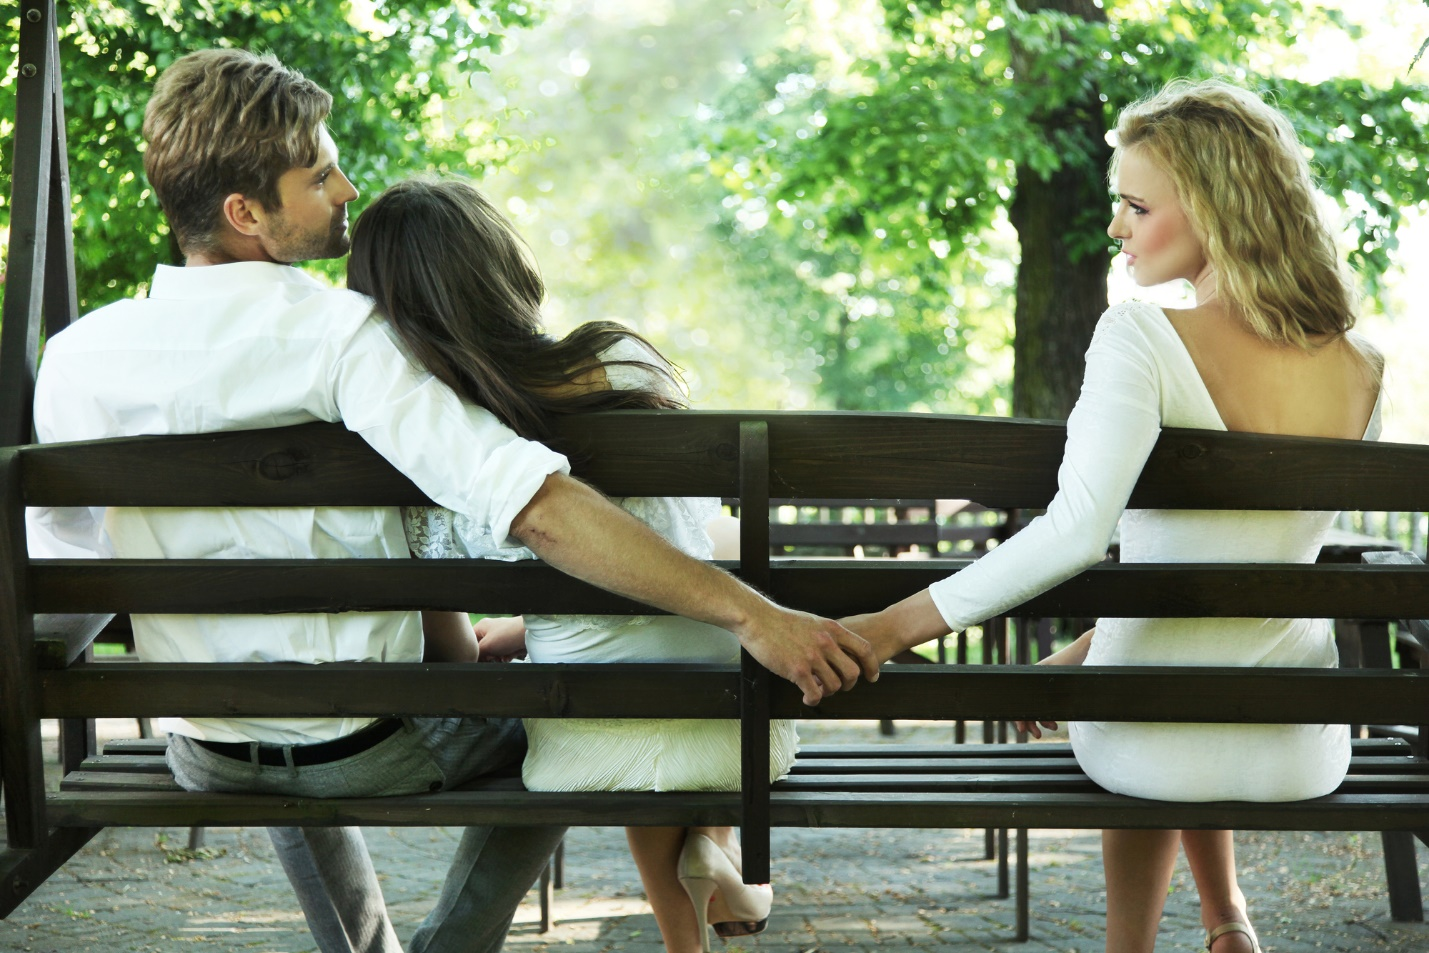 How Married People Get Away With Infidelity